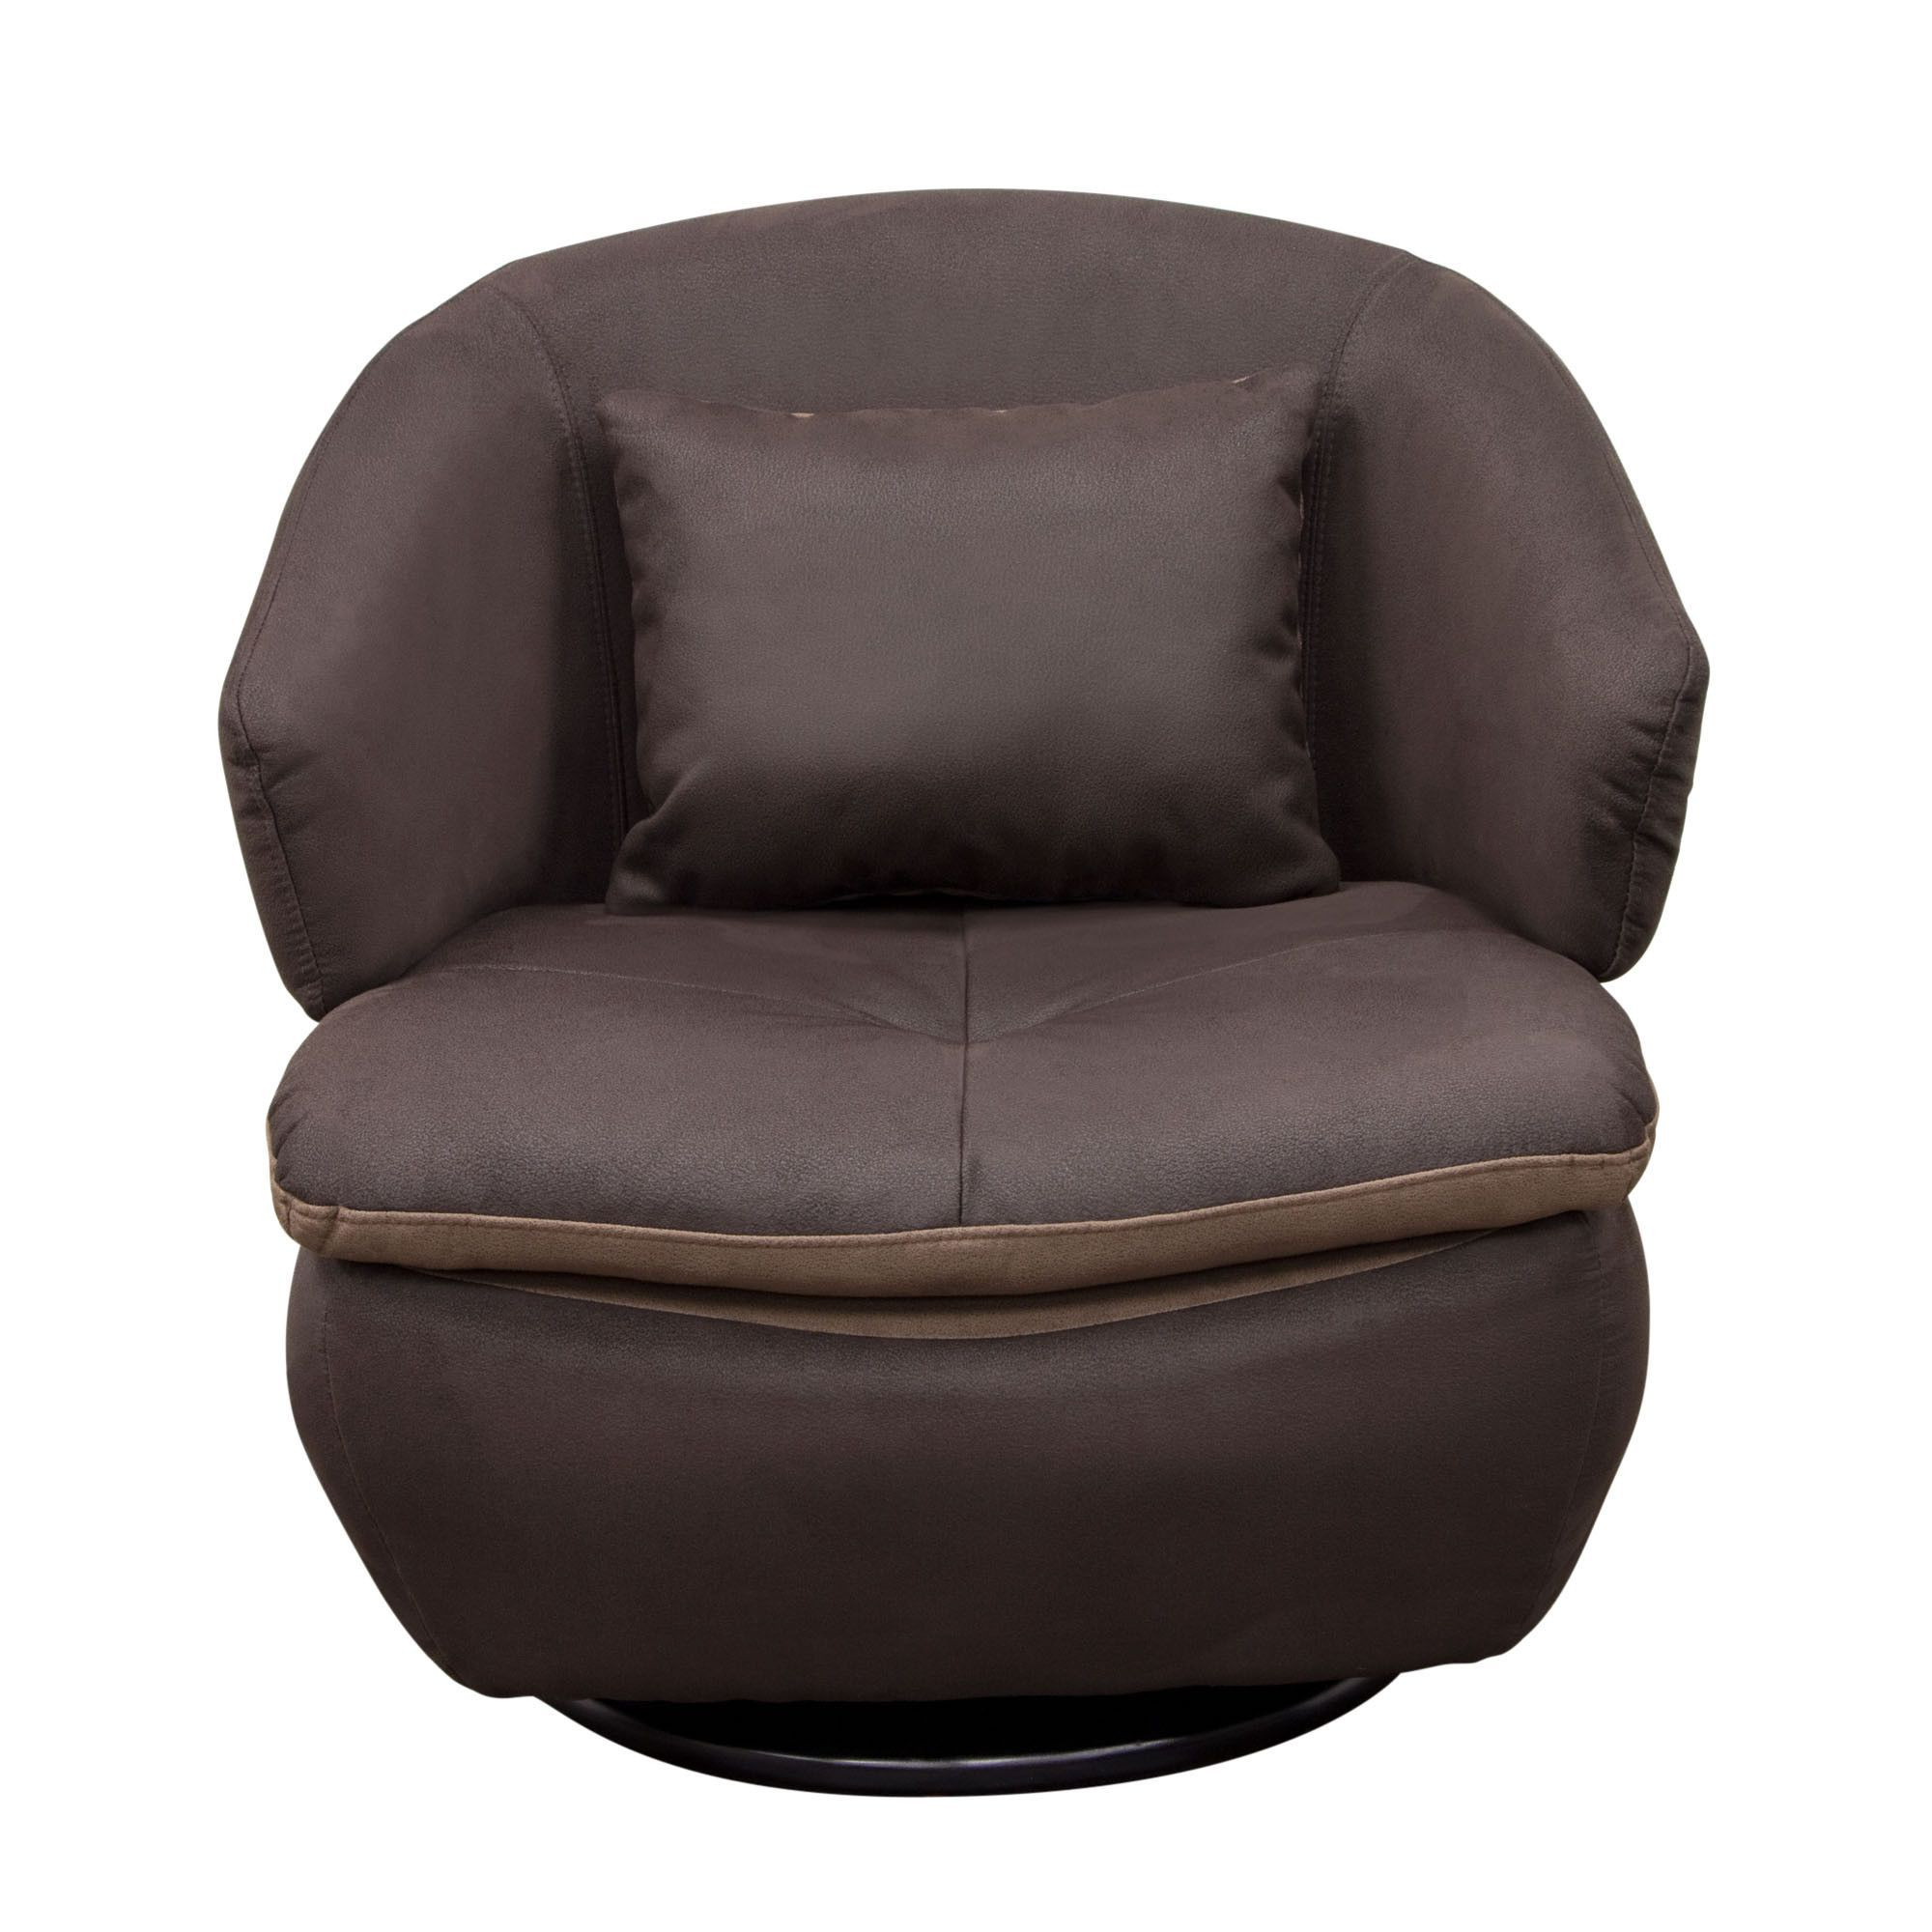 Most Recent Rio Swivel Accent Chair In Brown Fabricdiamond Sofa (View 11 of 20)